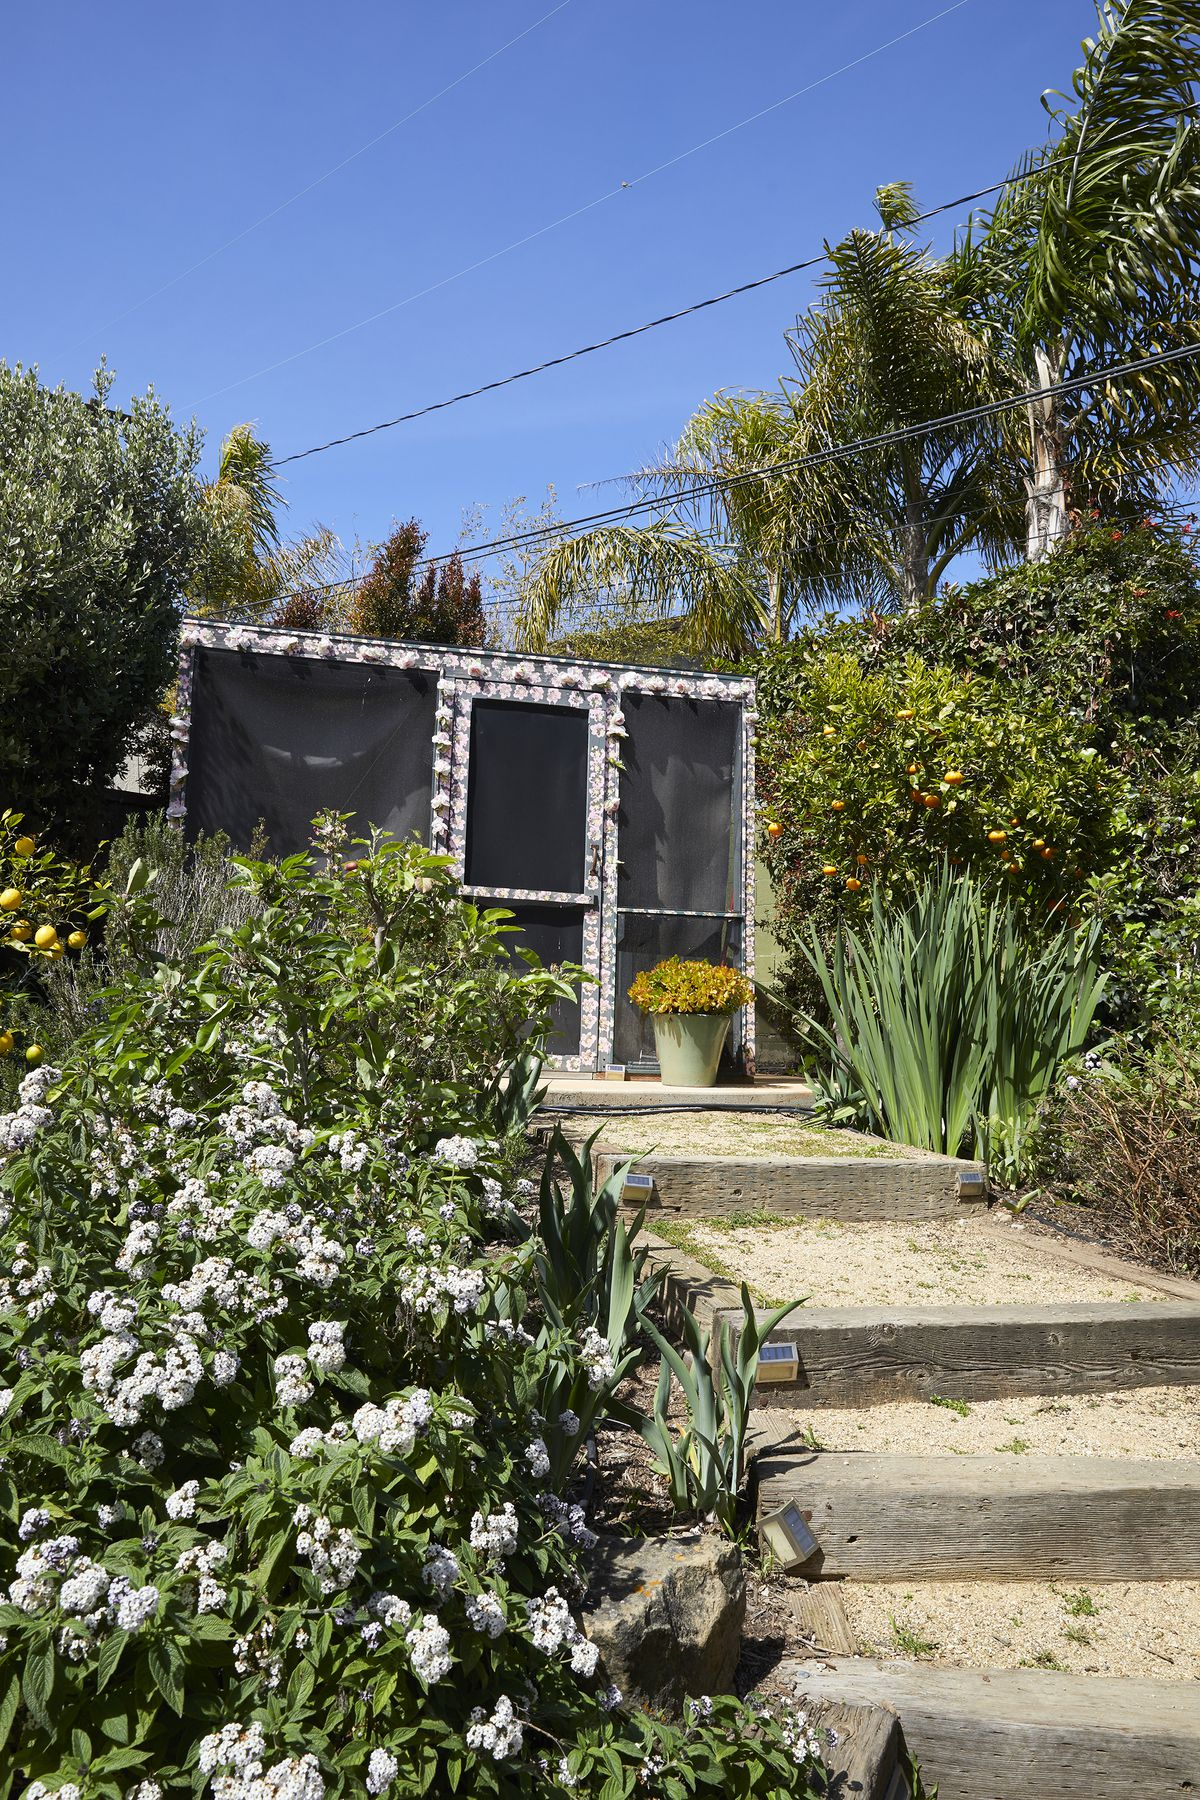 Stairs leading up to a structure which houses an outdoor bedroom. The stairs are flanked by flowering shrubbery.